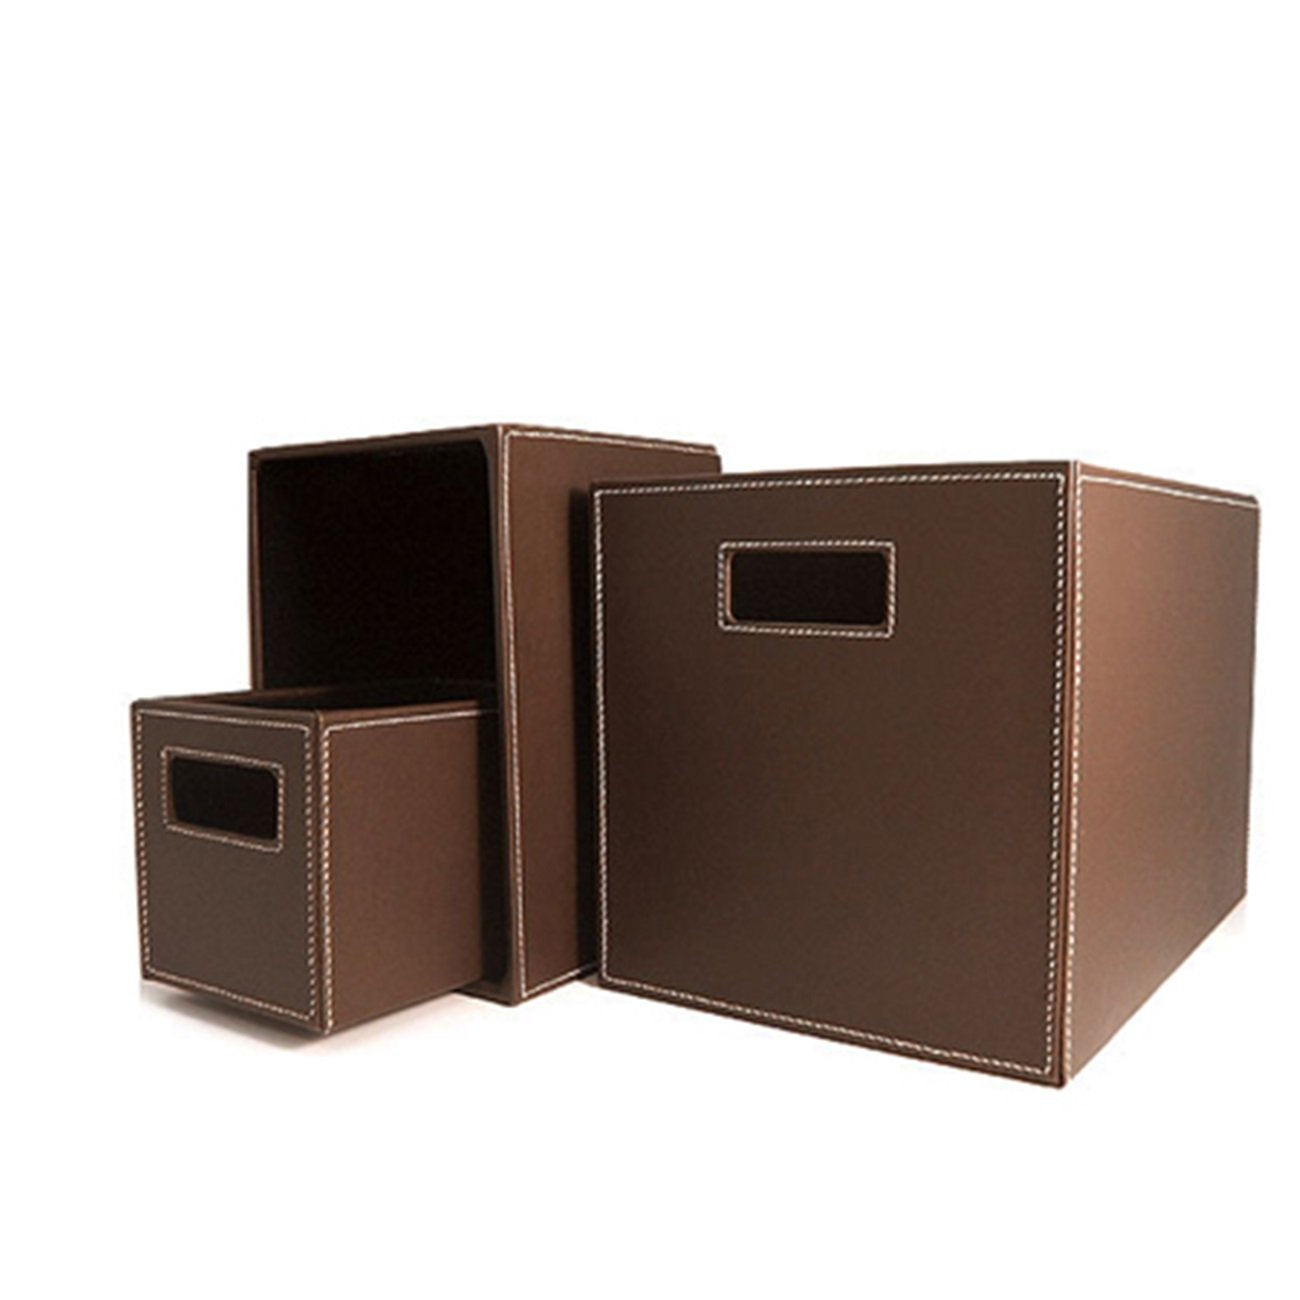 London Leather Storage Totes (Set of 3)